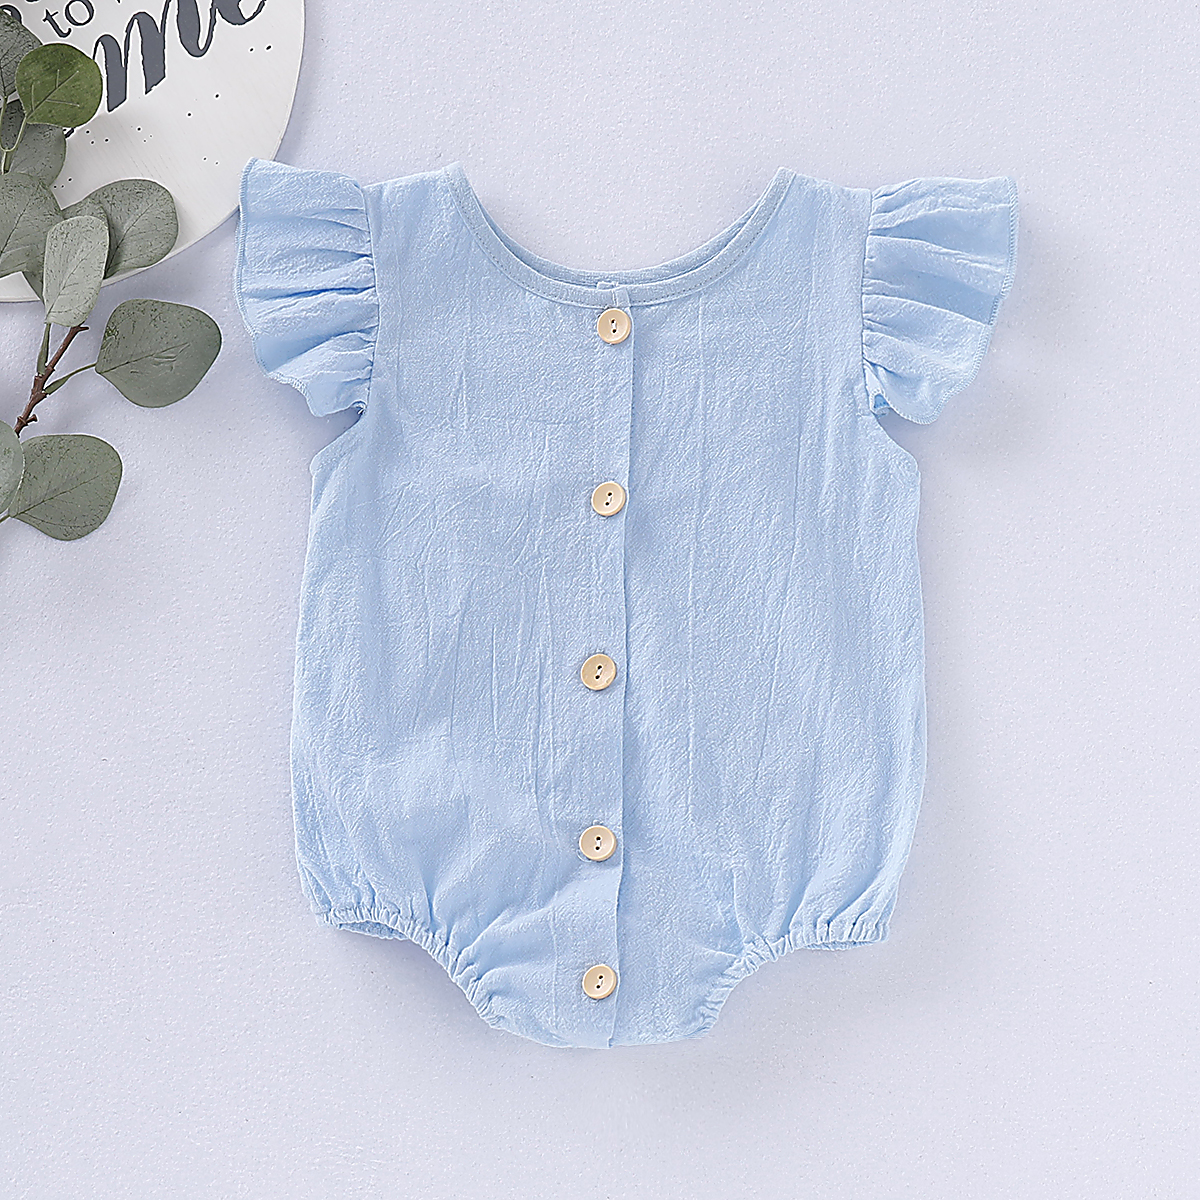 Pudcoco Newborn Baby Girl Clothes Solid Color Fly Sleeve Ruffle Cotton Romper Jumpsuit One-Piece Outfit Sunsuit